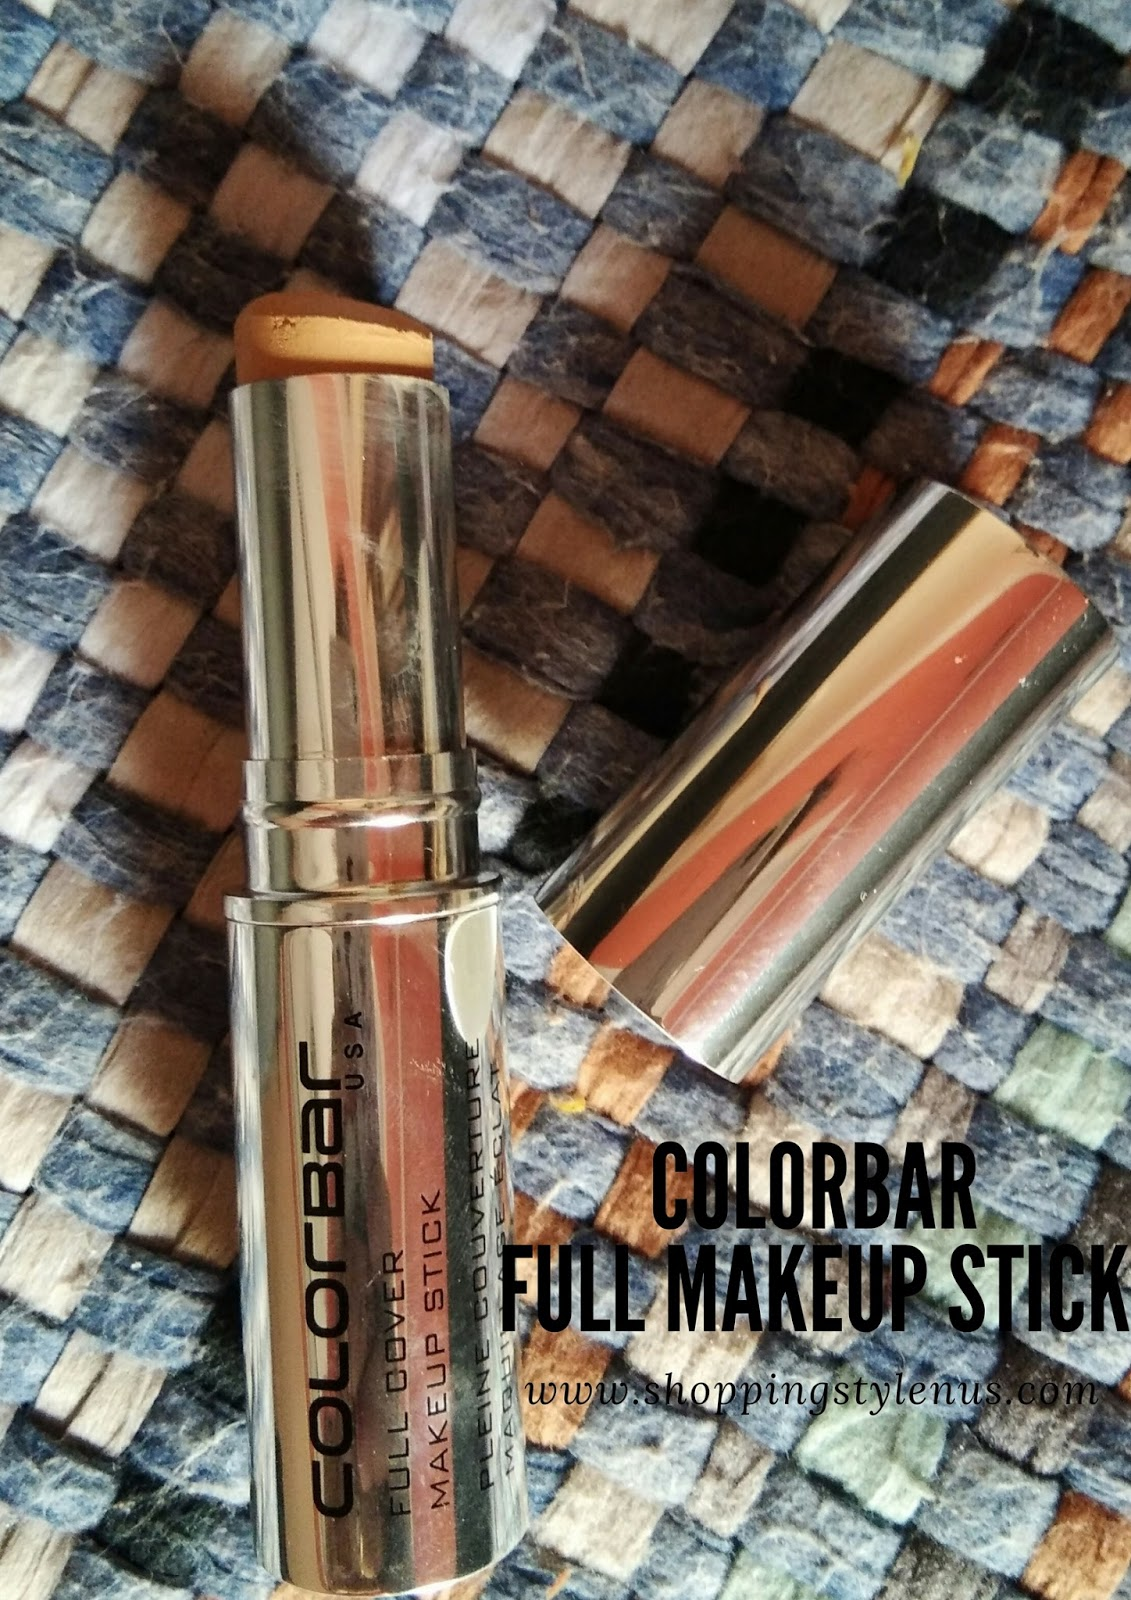 f83119844d91 It's a concealer and can be used as a foundation, if your skin is free